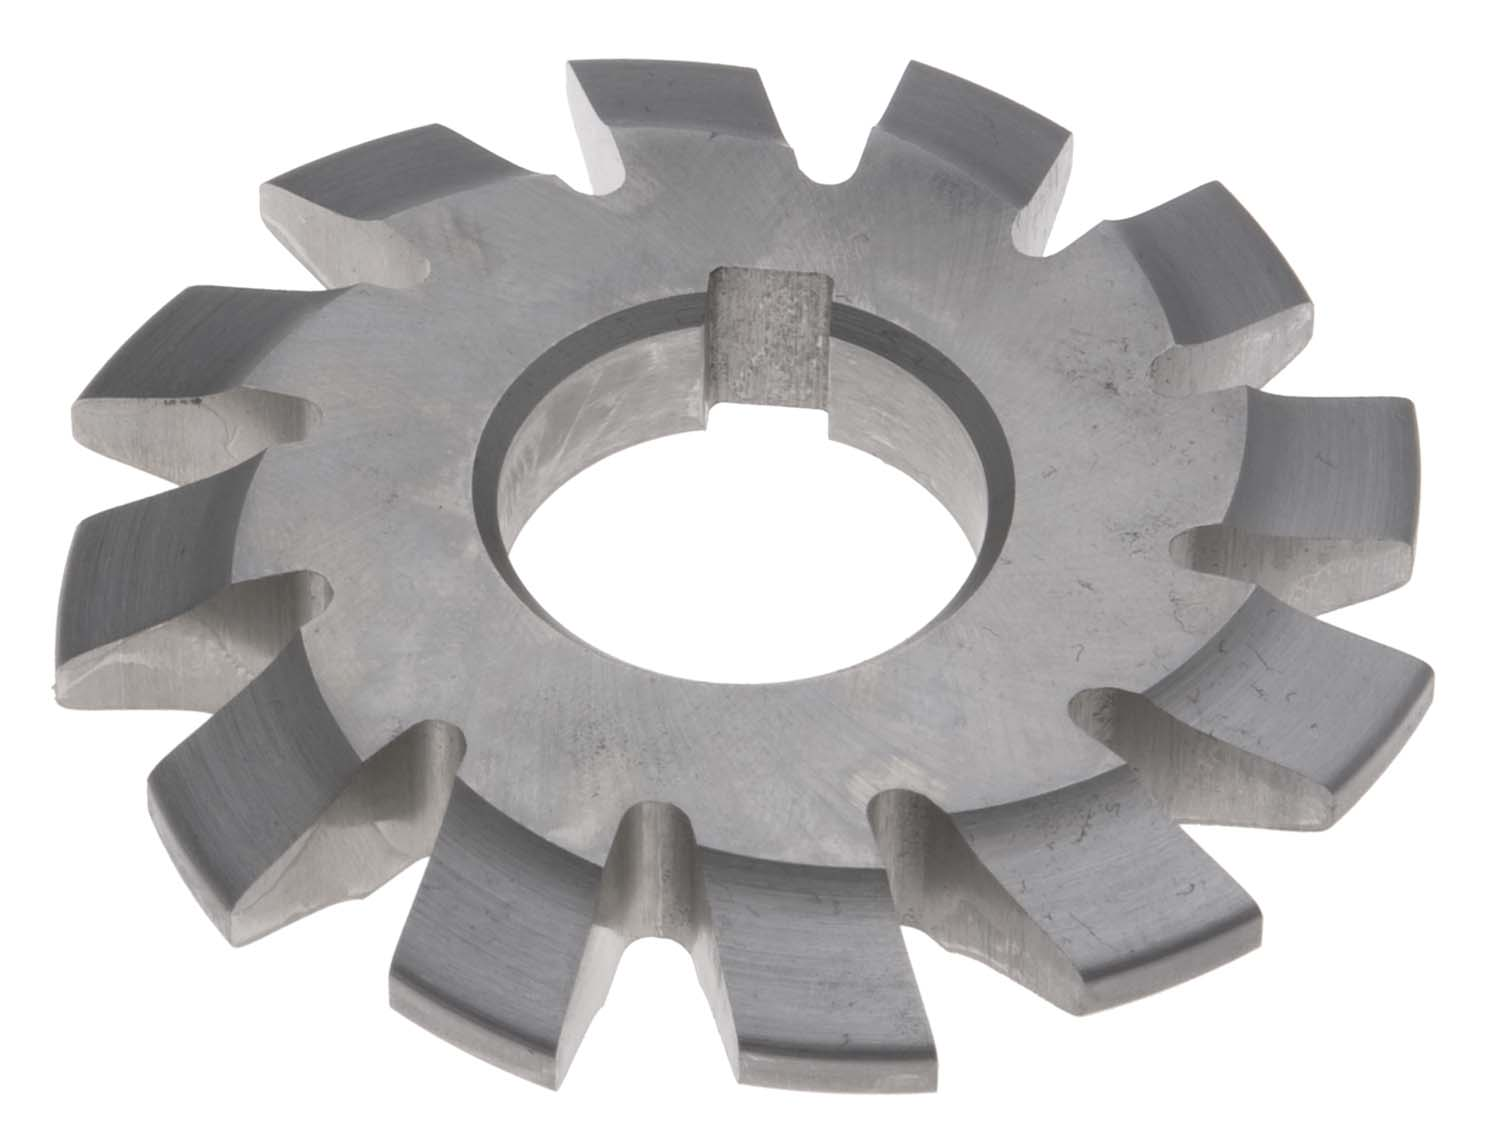 7 Diametral Pitch # 6   Involute Gear Cutter - 1 Inch ID - 14-1/2 Degree Pressure Angle